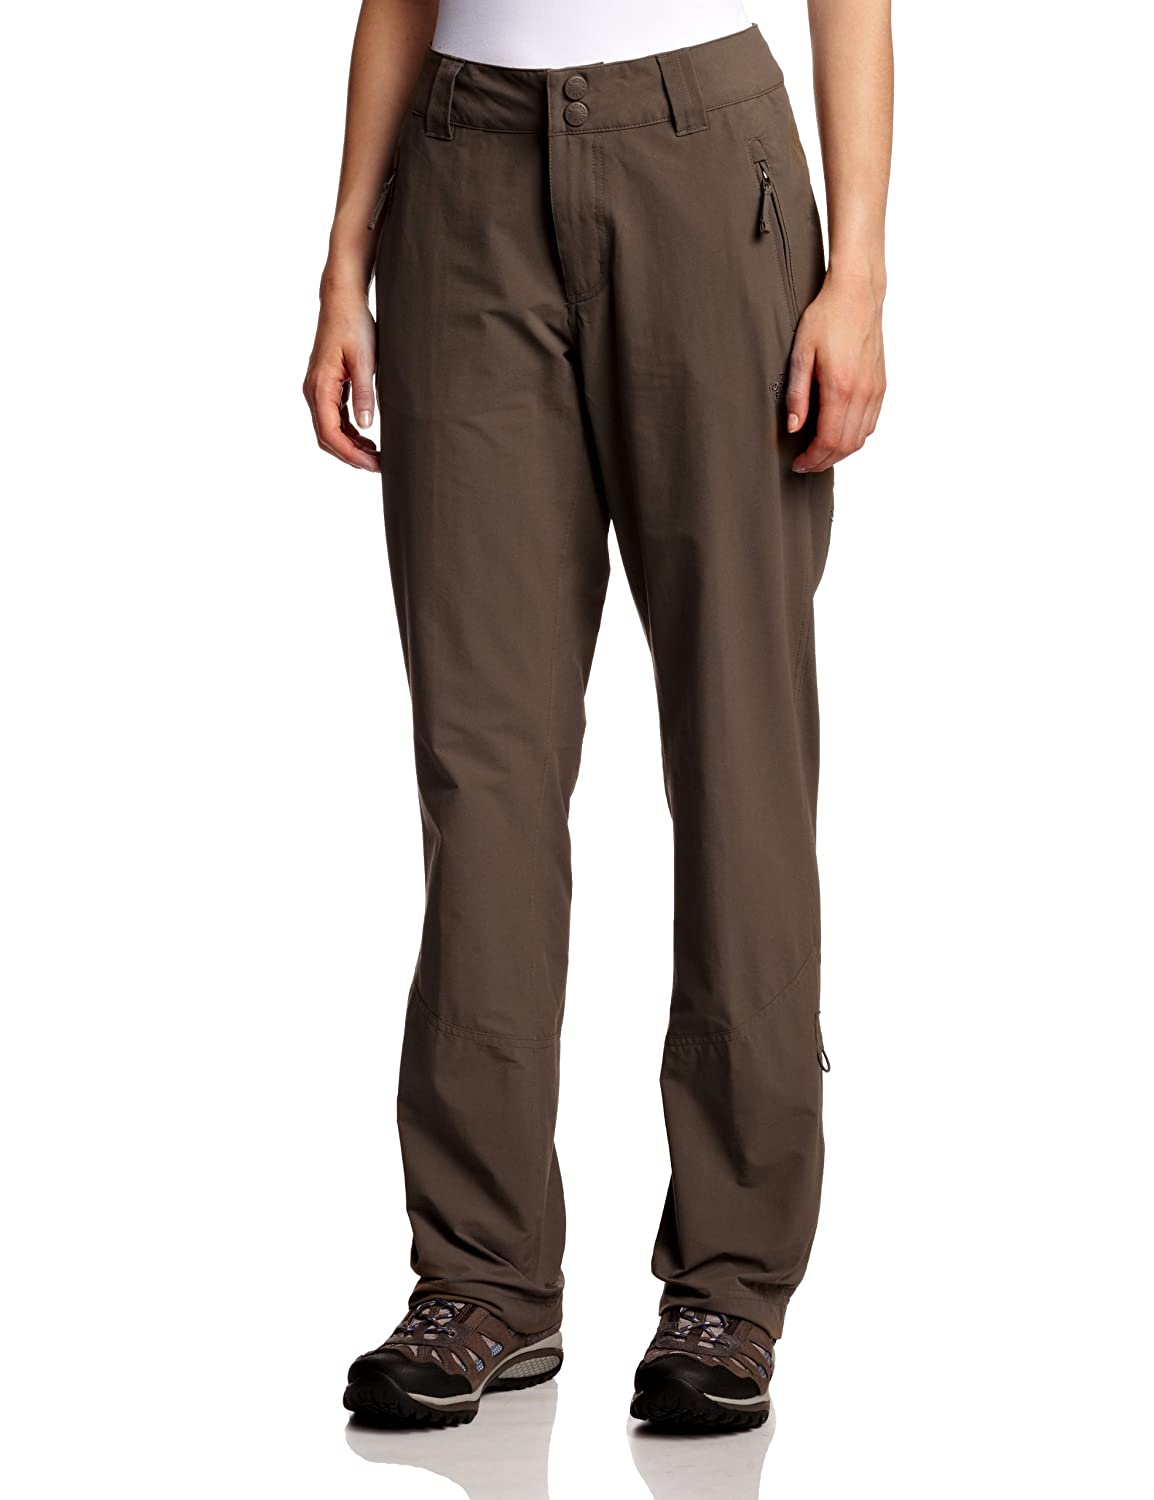 THE NORTH FACE Trekker Pant damen braun